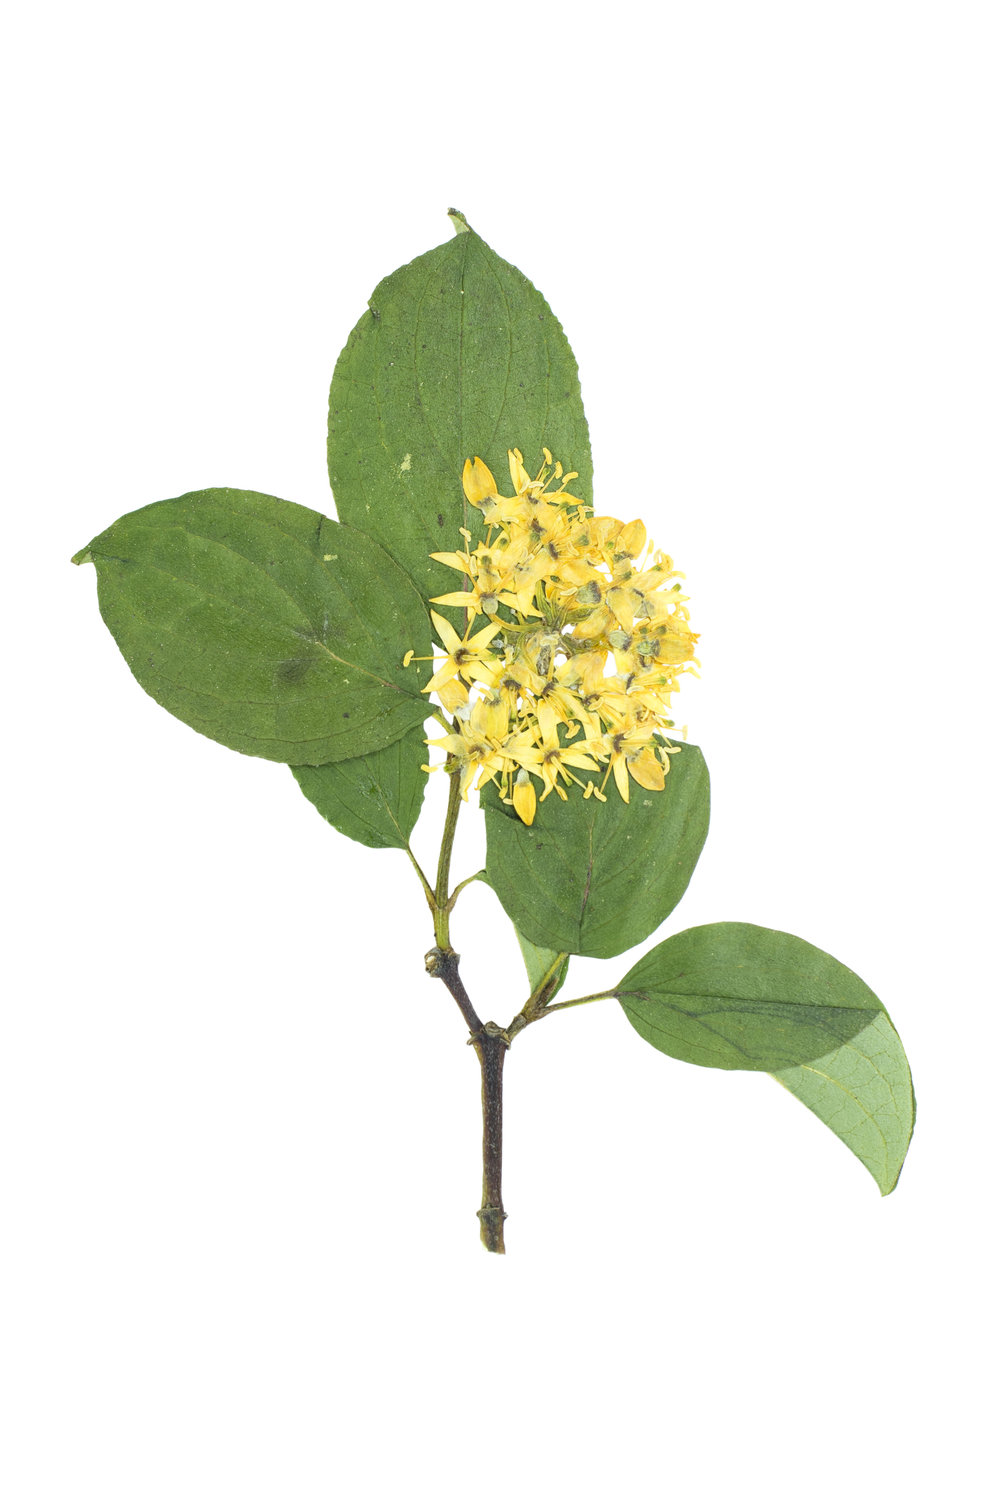 New! Dogwood / Cornus sanguinea